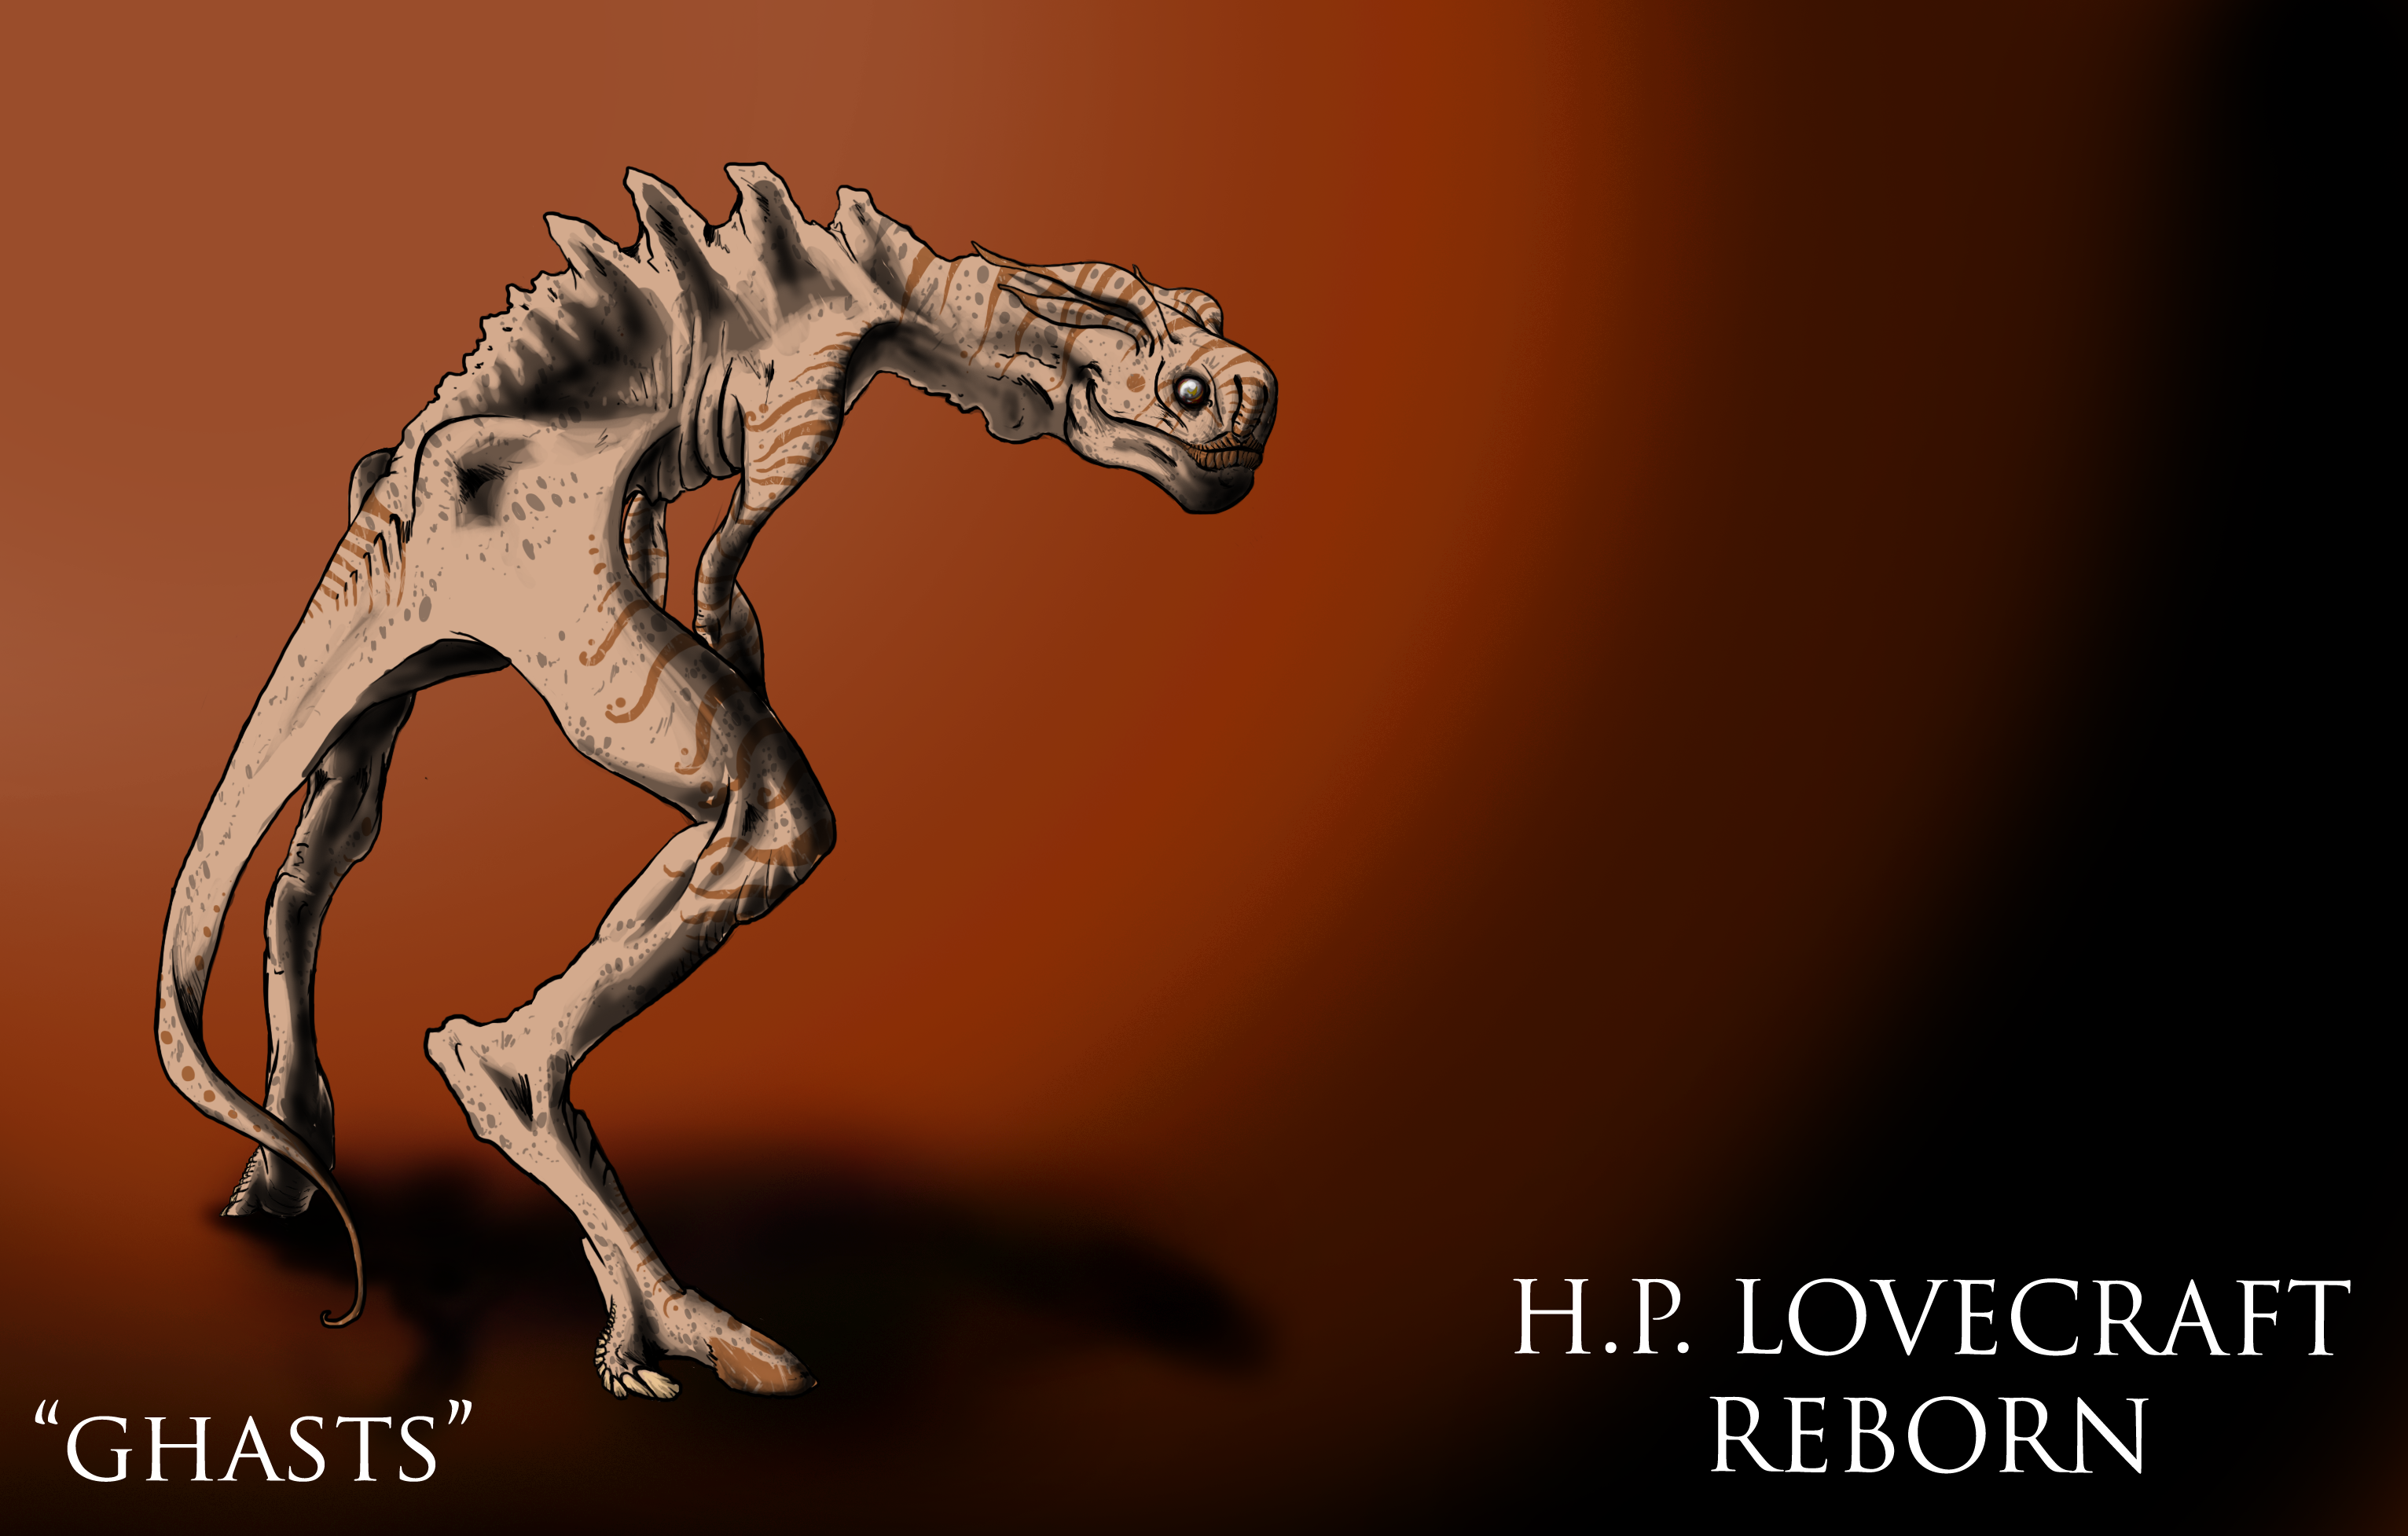 lovecraft reborn quotghastsquot by seansumagaysay on deviantart